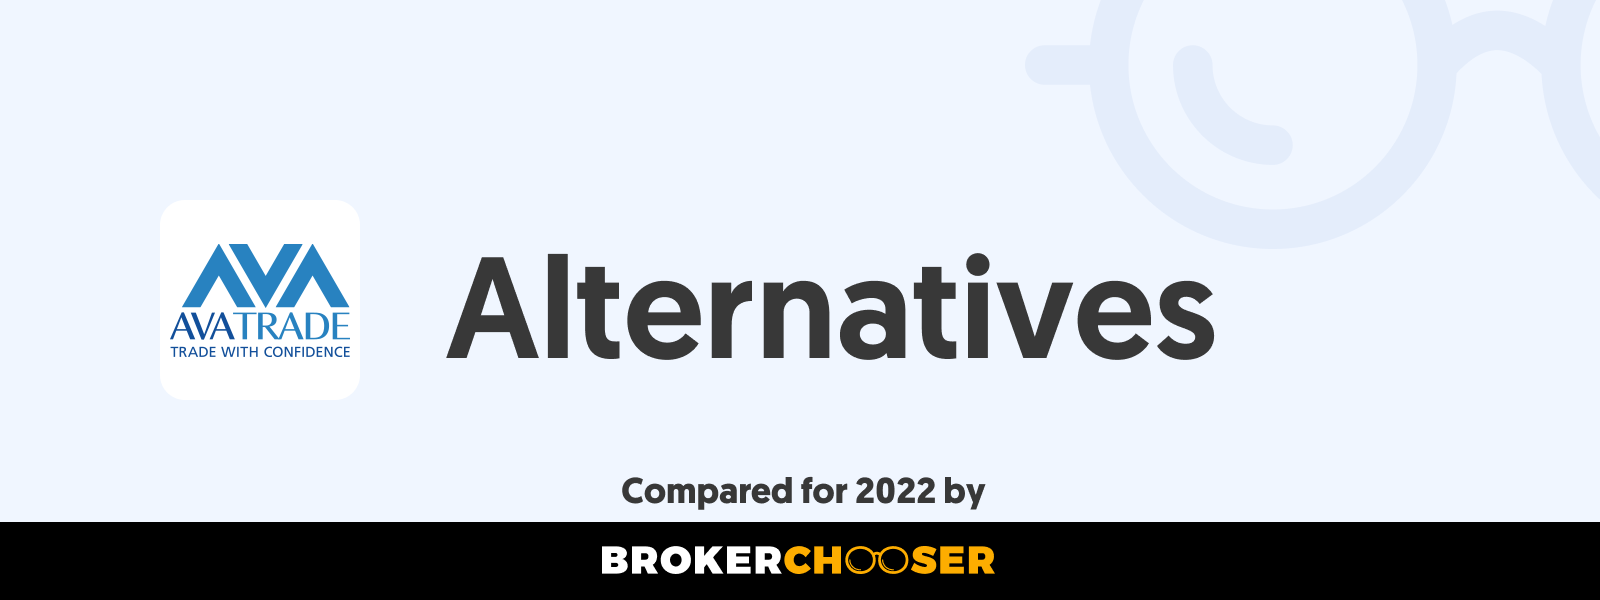 AvaTrade Alternatives